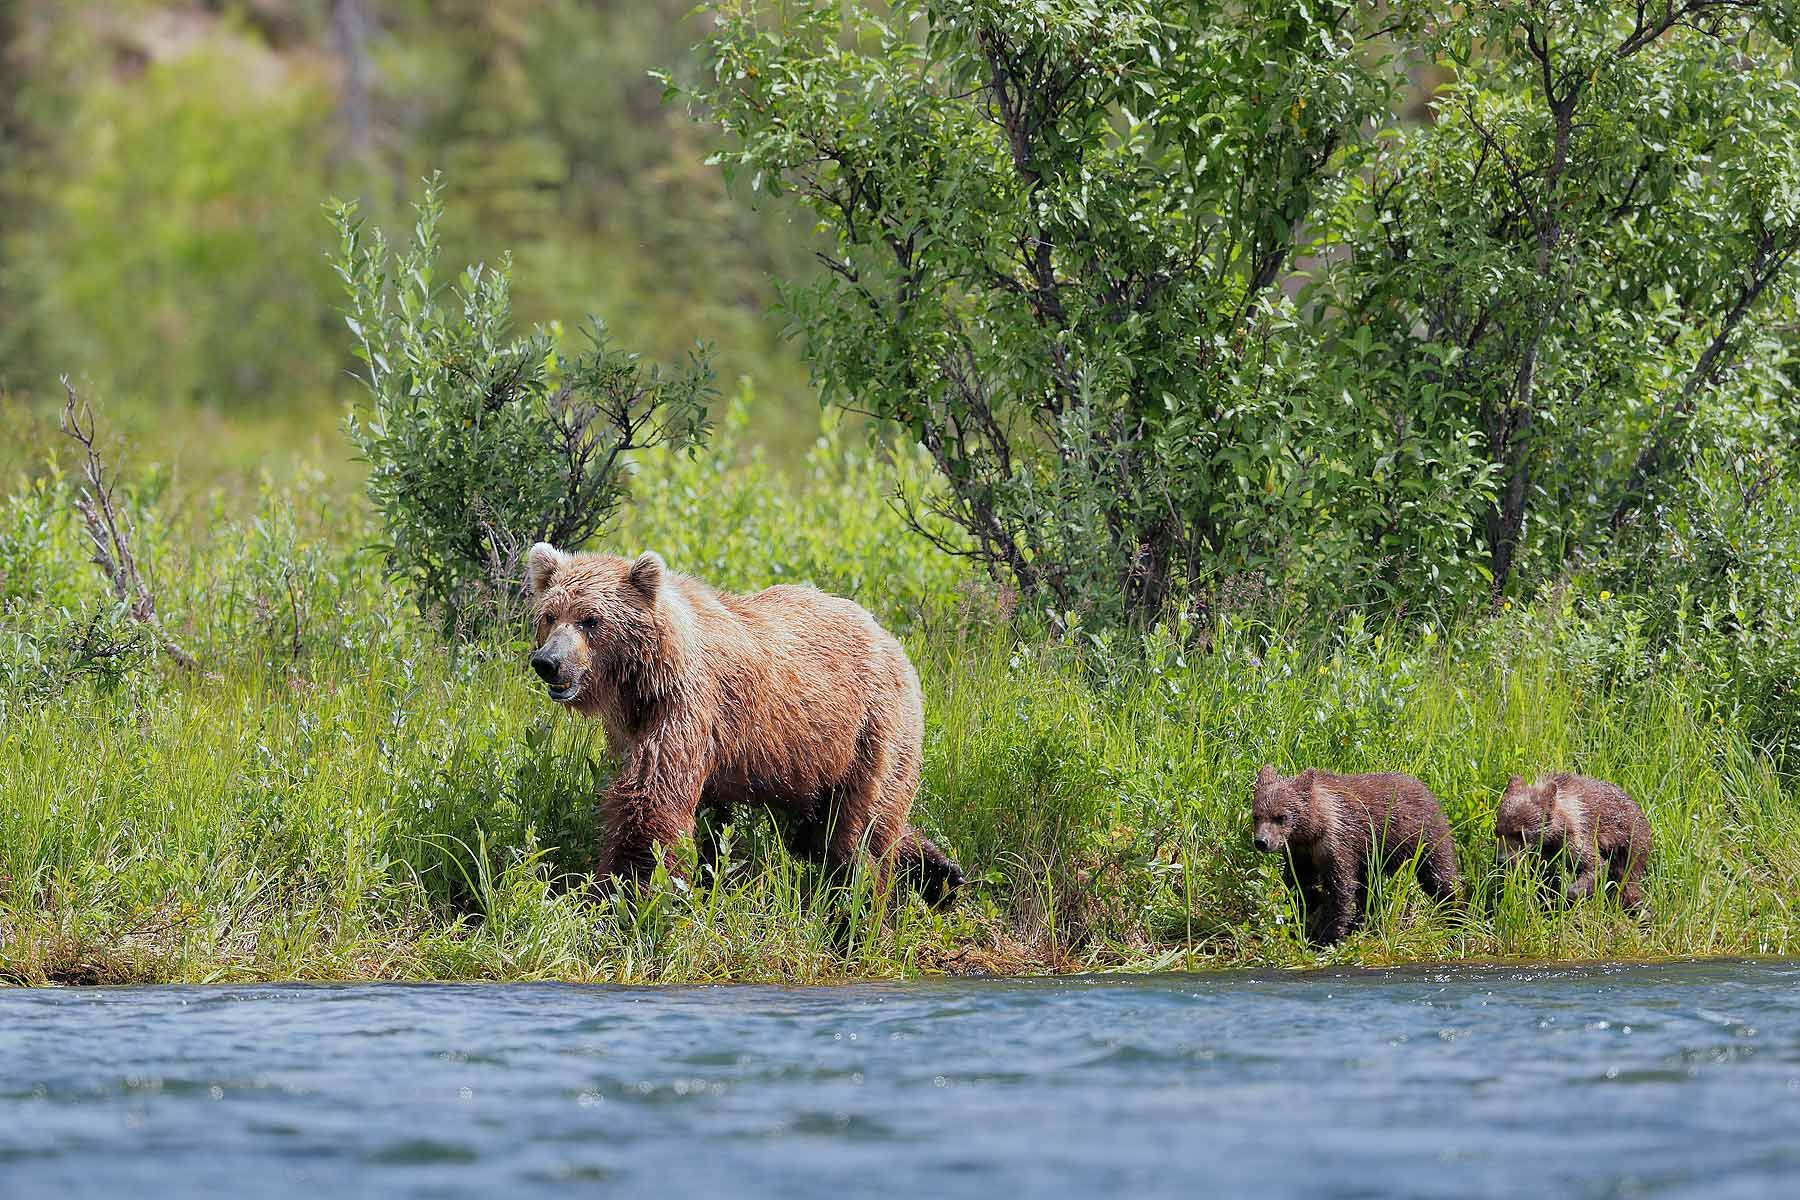 Coastal-brown-bear-sow-and-cubs-waling-along-the-river_A3I7164-Alagnak-River,-Katmai-National-Park-&-Preserve,-AK,-USA.jpg